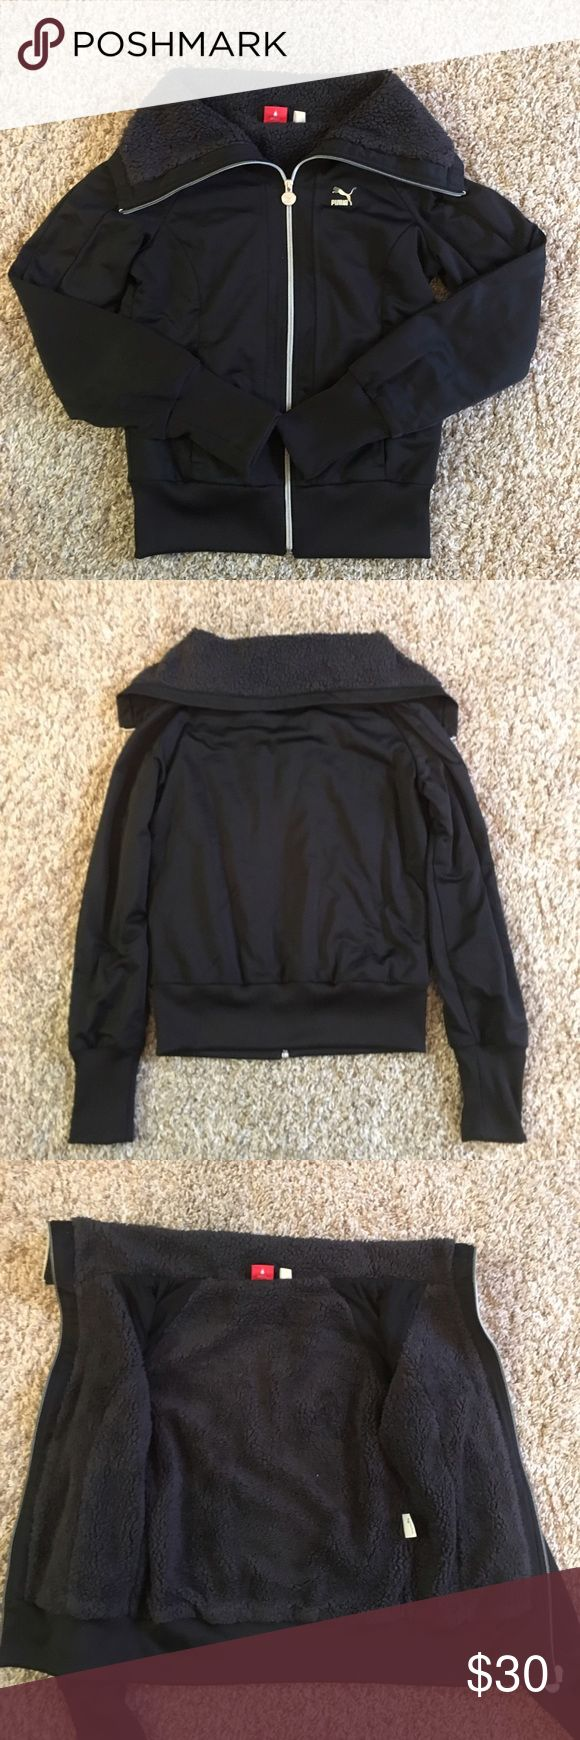 Black Fuzzy Puma Jacket vguc black zip up puma jacket with fuzzy interior. super warm and soft. perfect for cooler months Puma Jackets & Coats